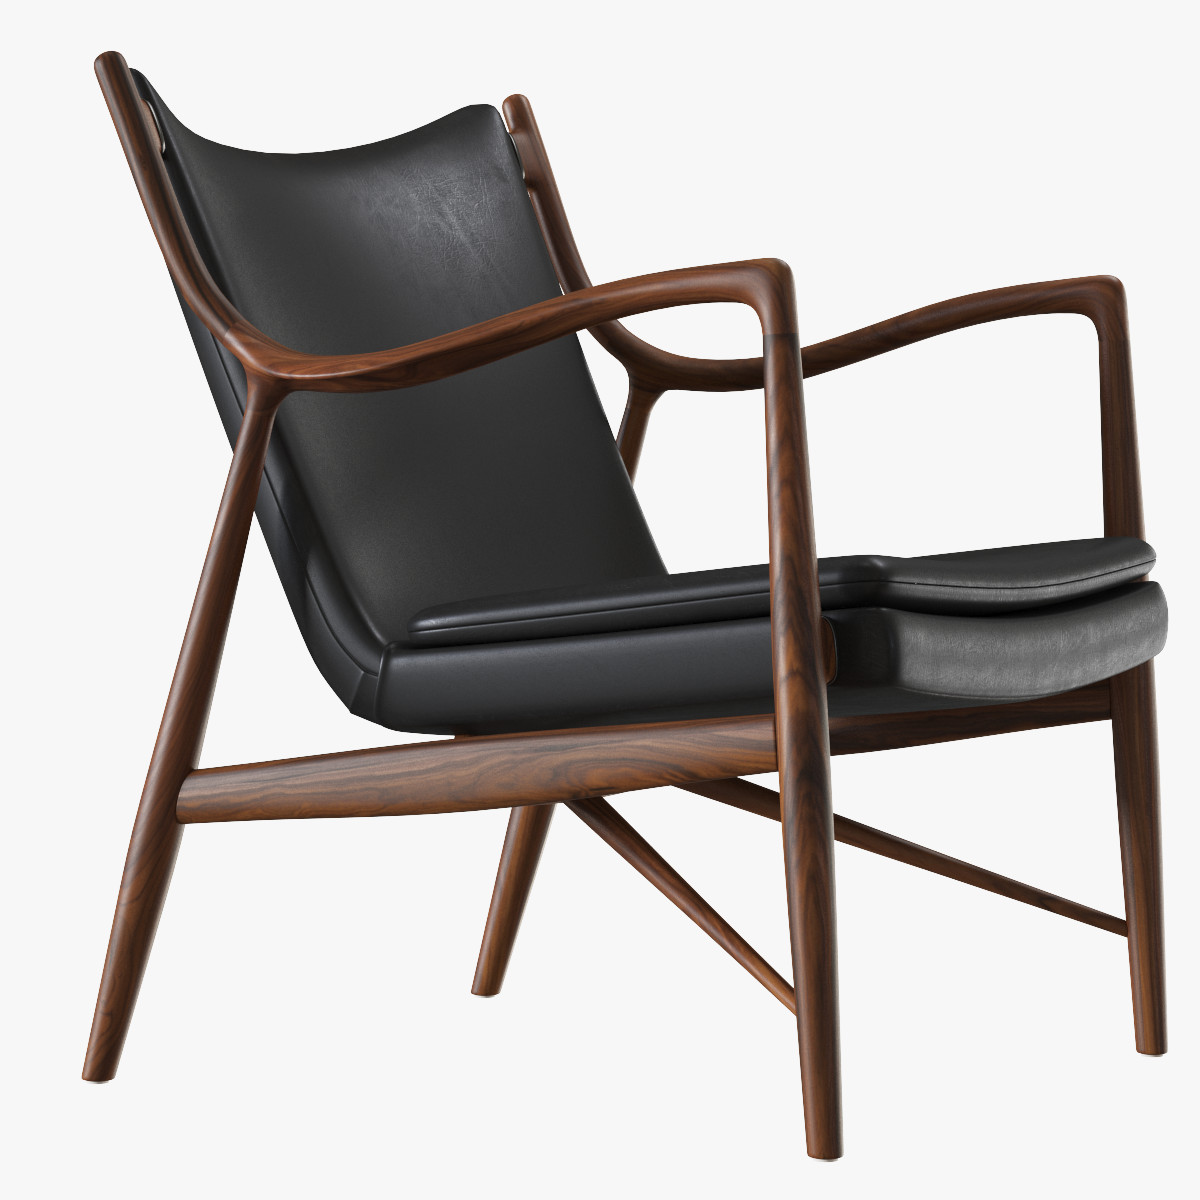 3d finn juhl 45 chair